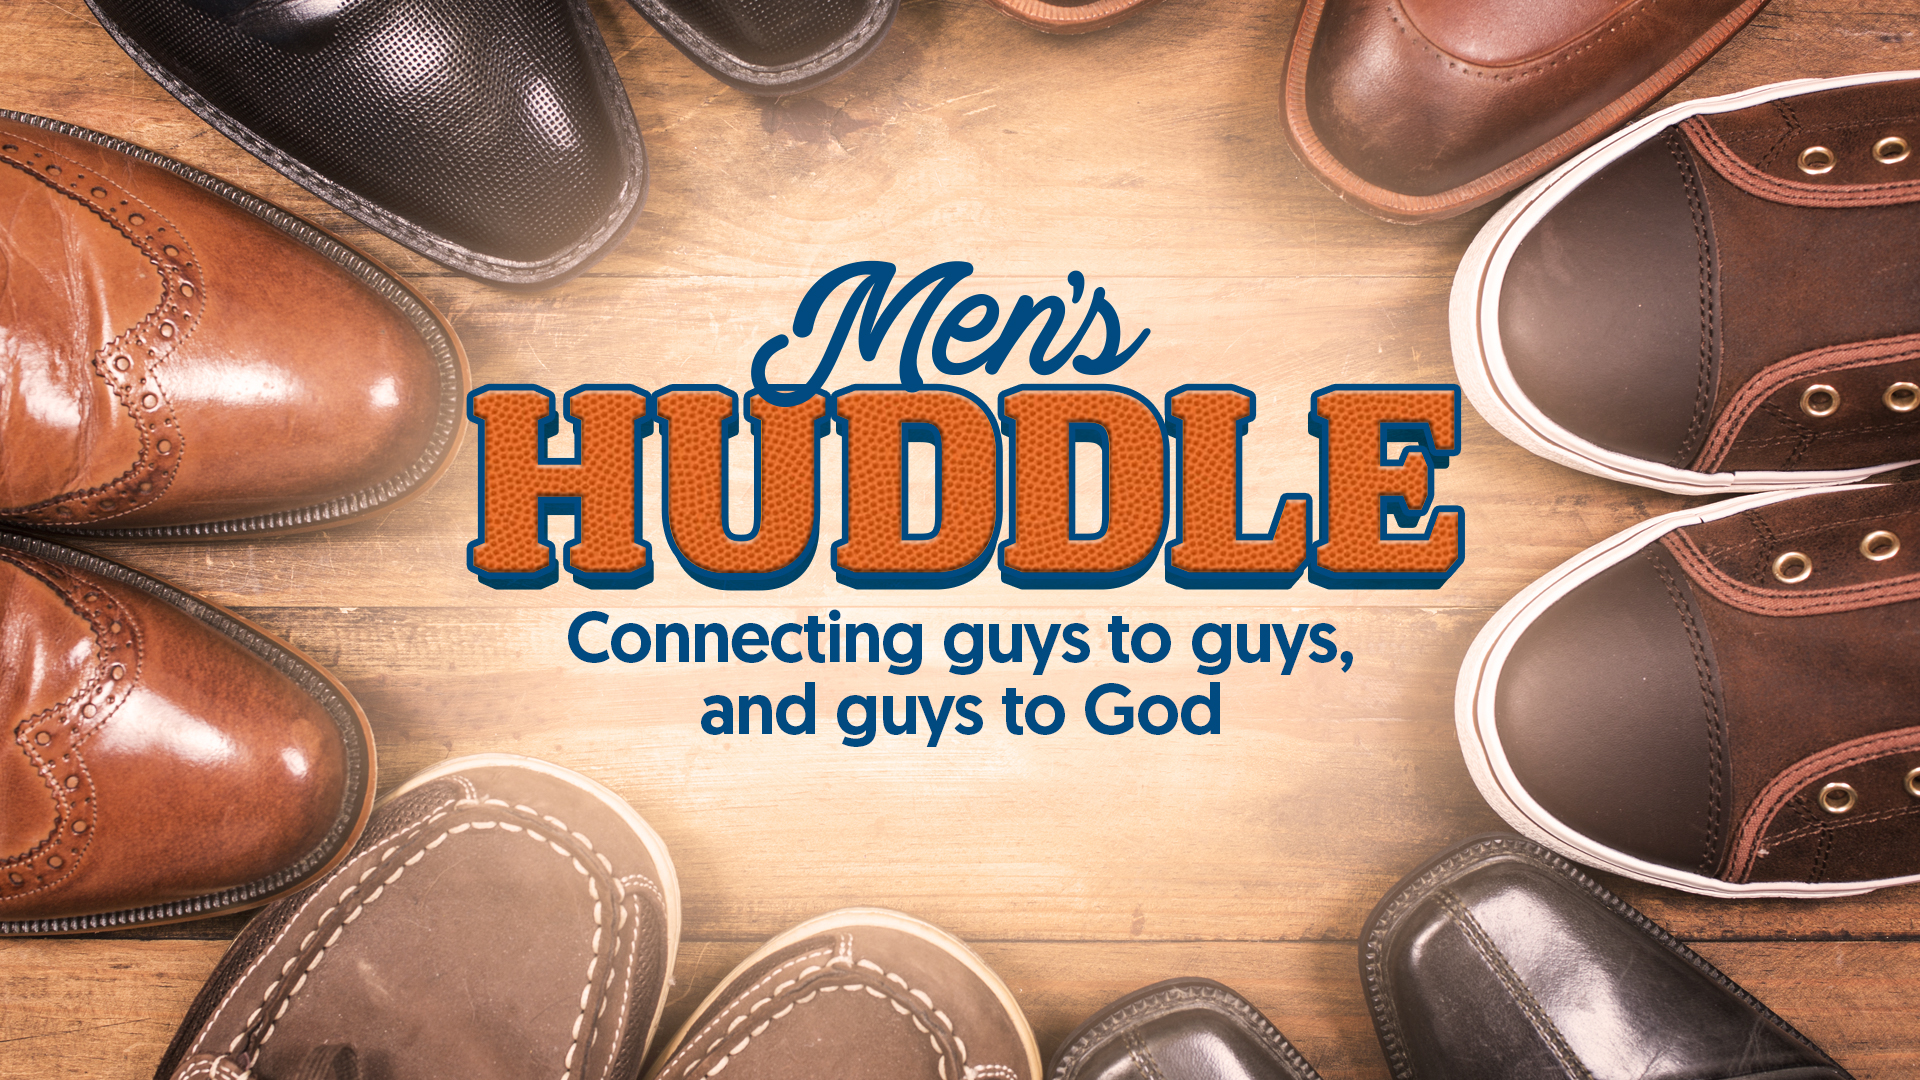 Men's Ministry HUDDLE